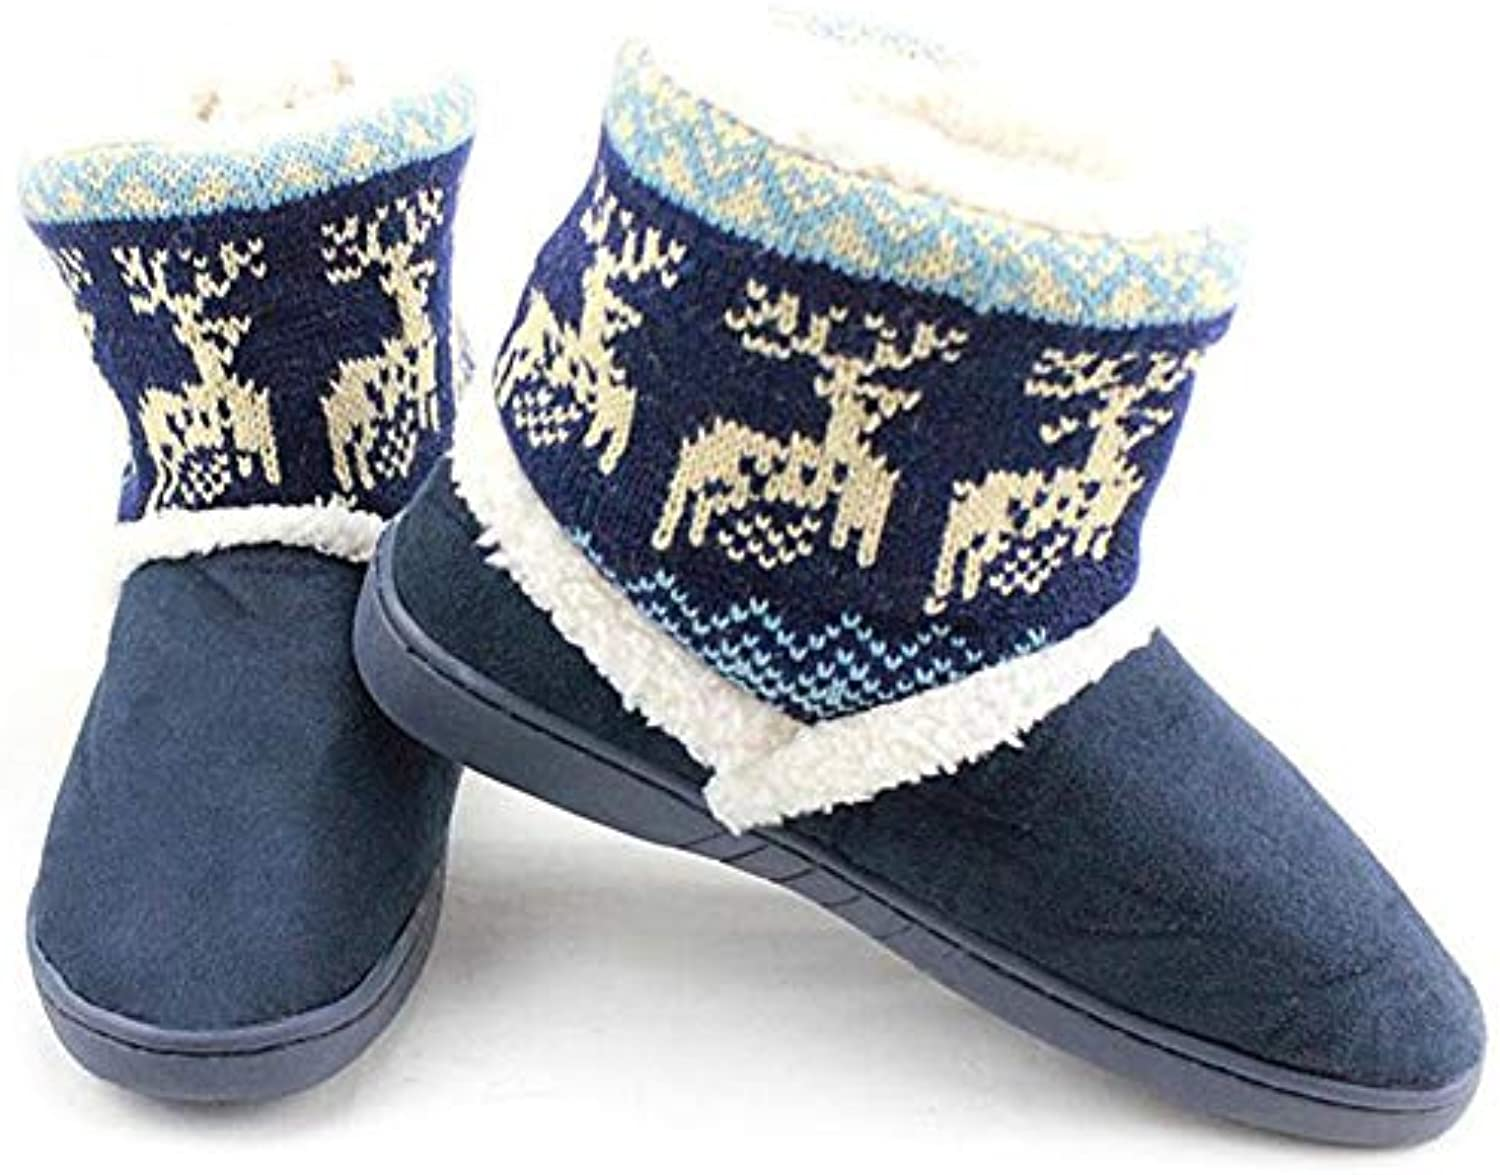 T-JULY Deer Snow Boots Women Thicken Mid-Calf Winter Warm Couple Plush Boots Fur Lined shoes Plus Size Winter shoes